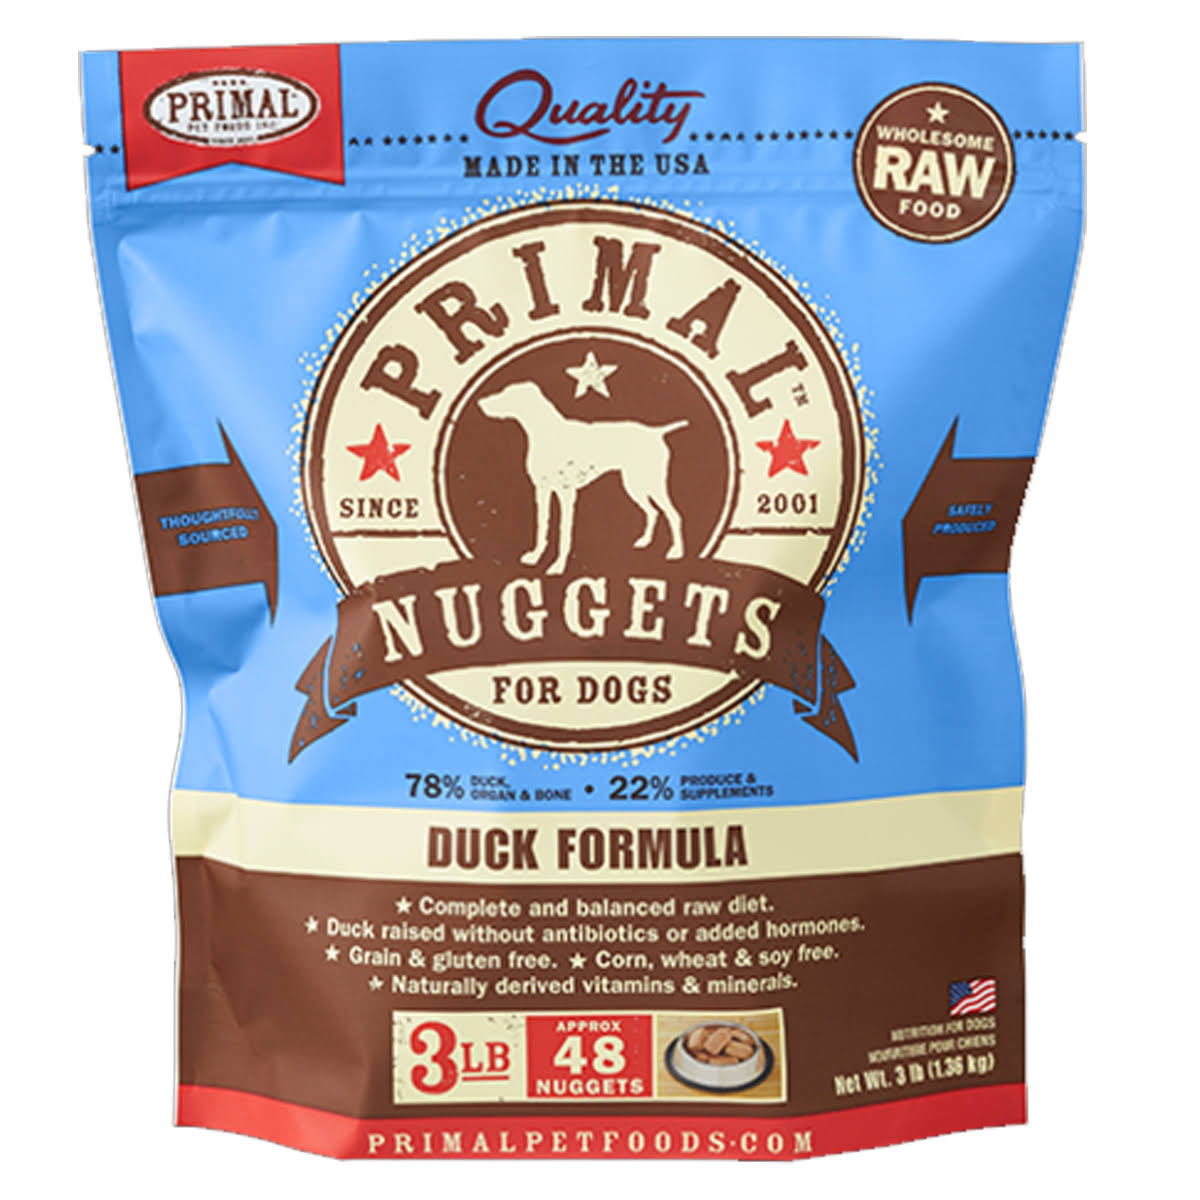 Primal Duck Canine Food - 48 oz bag